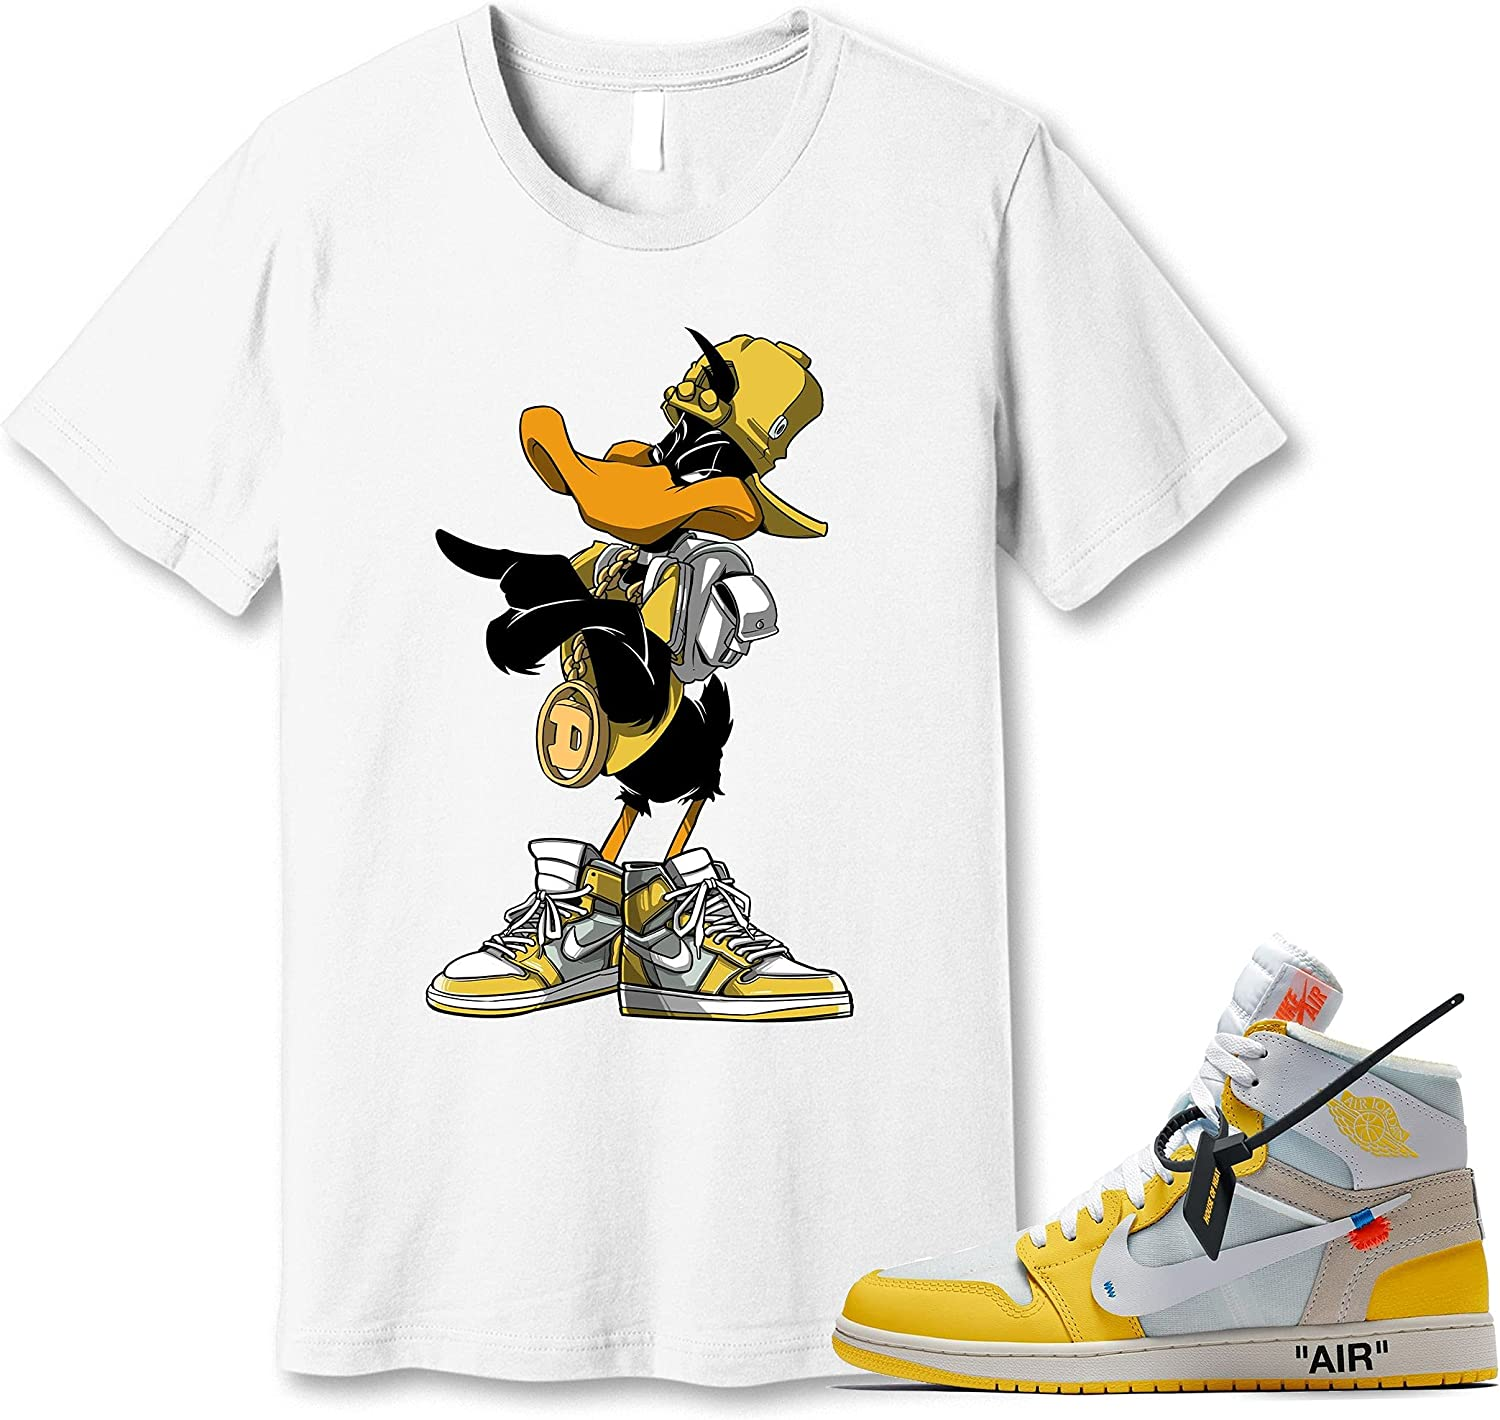 #Daffy #Duck White T-Shirt to 35% OFF Max 73% OFF Match Yellow Sneak Canary Jordan 1